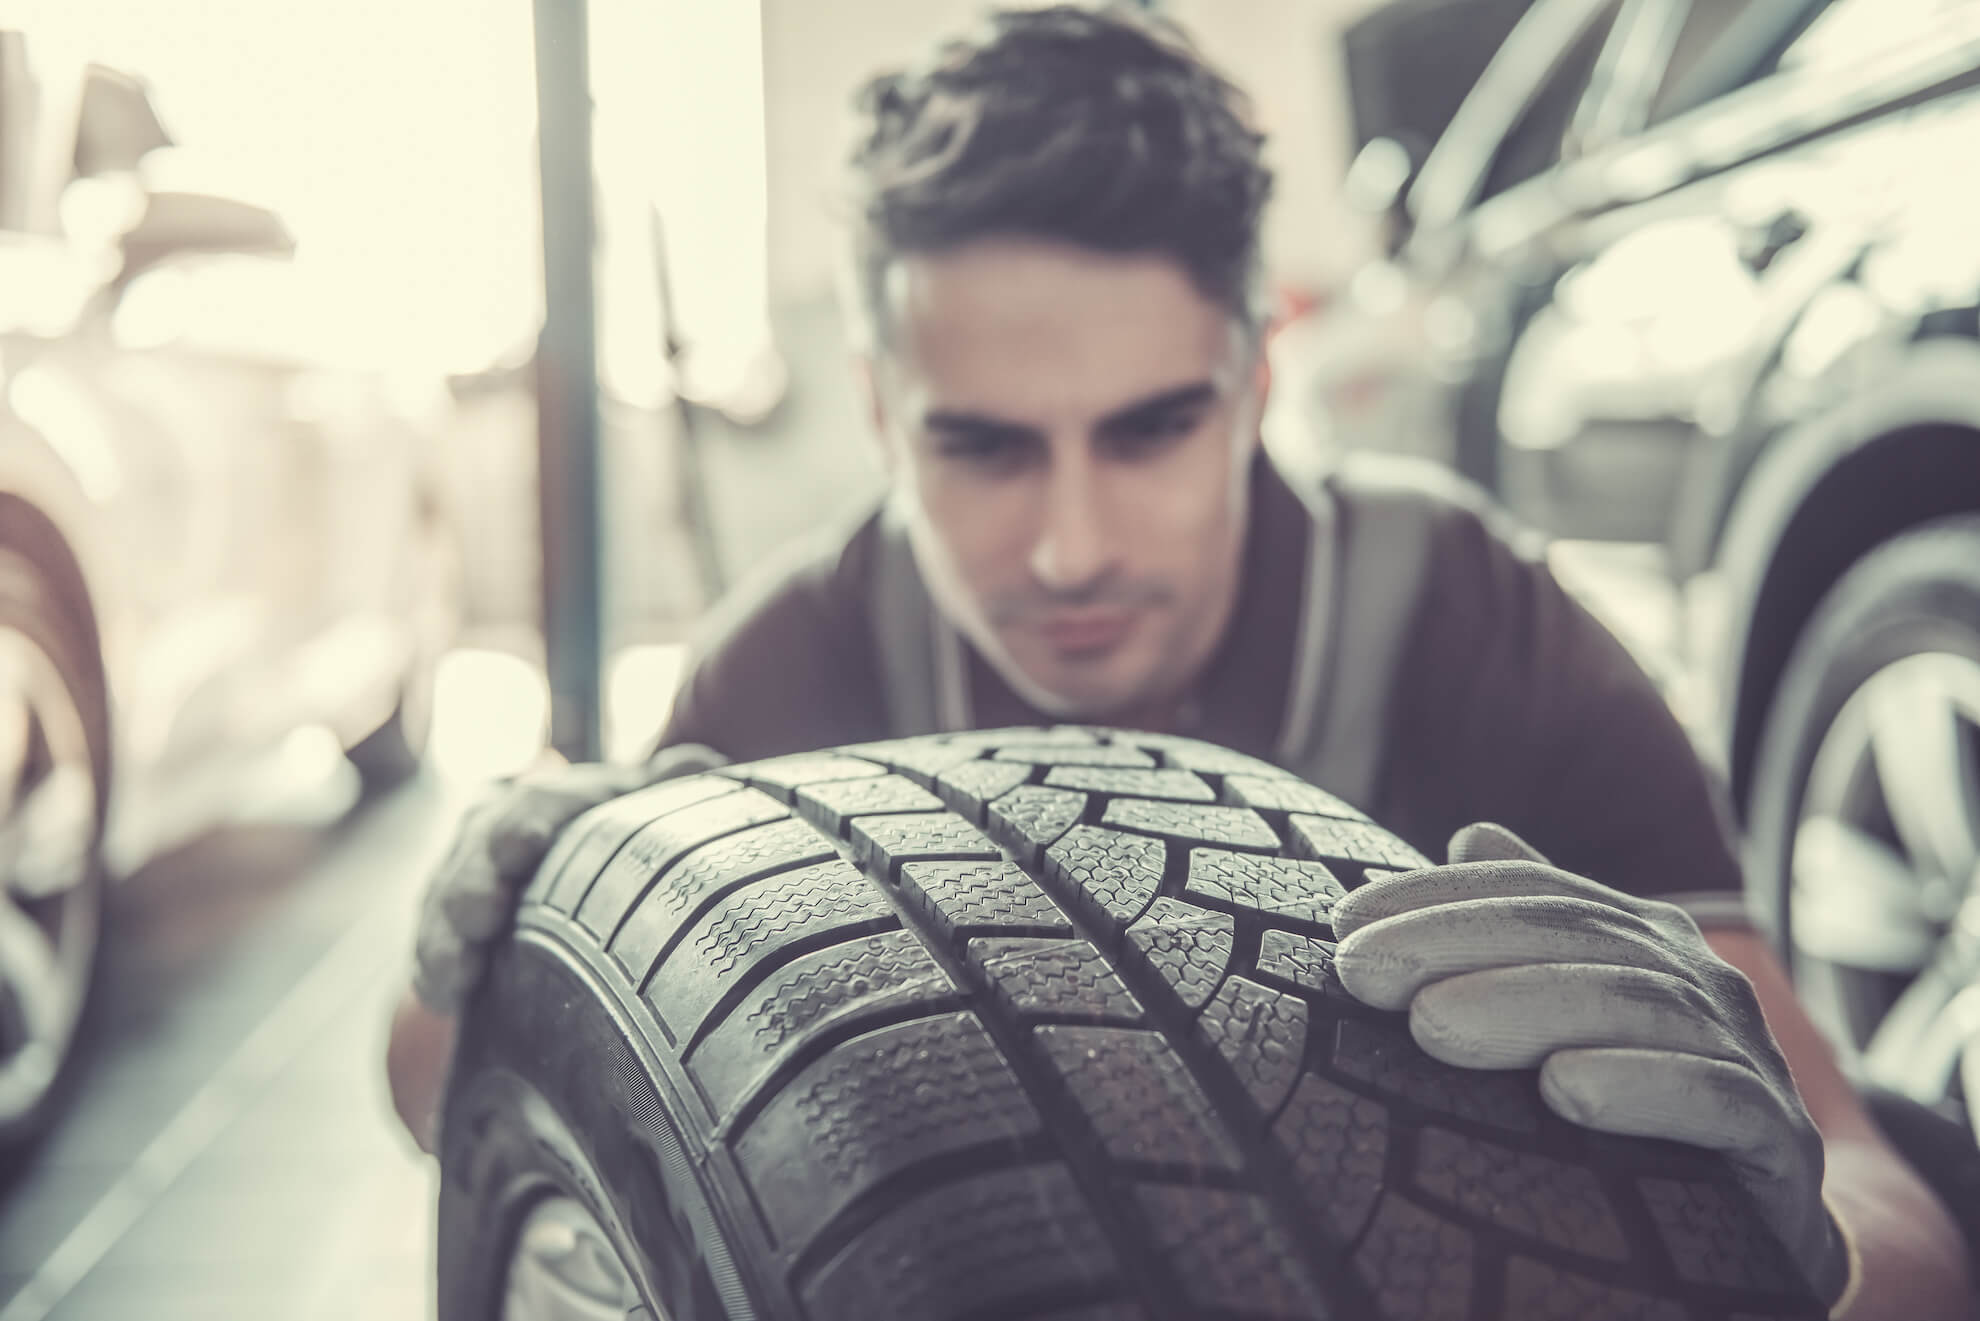 The tire partners of the Clyde car subscription